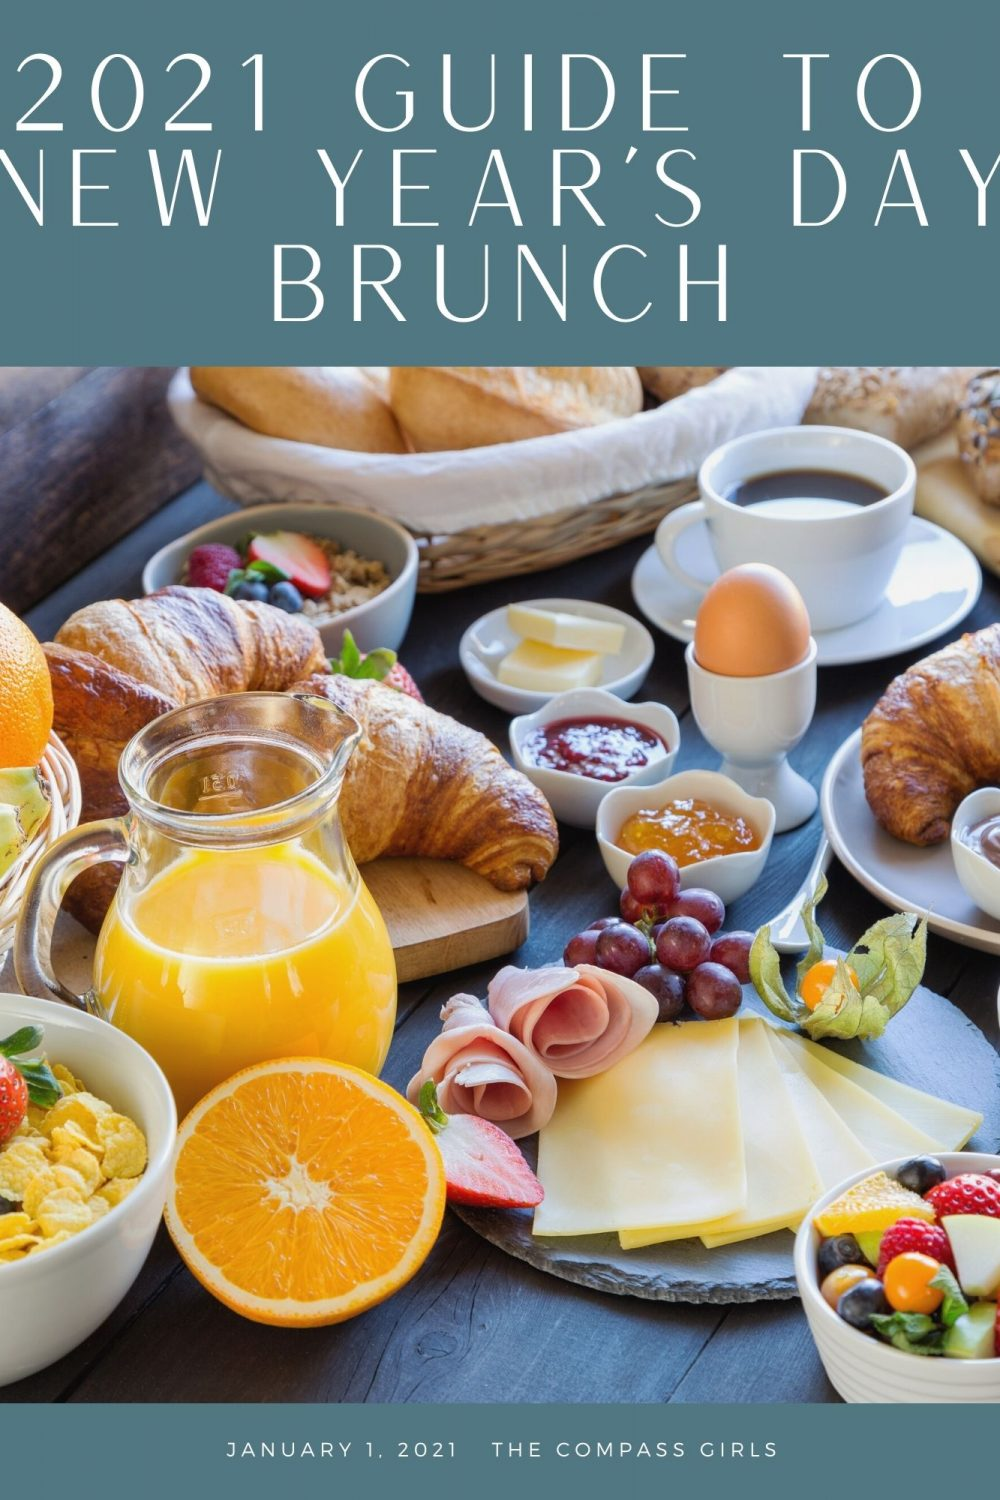 2021 Guide to New Year's Day Brunch